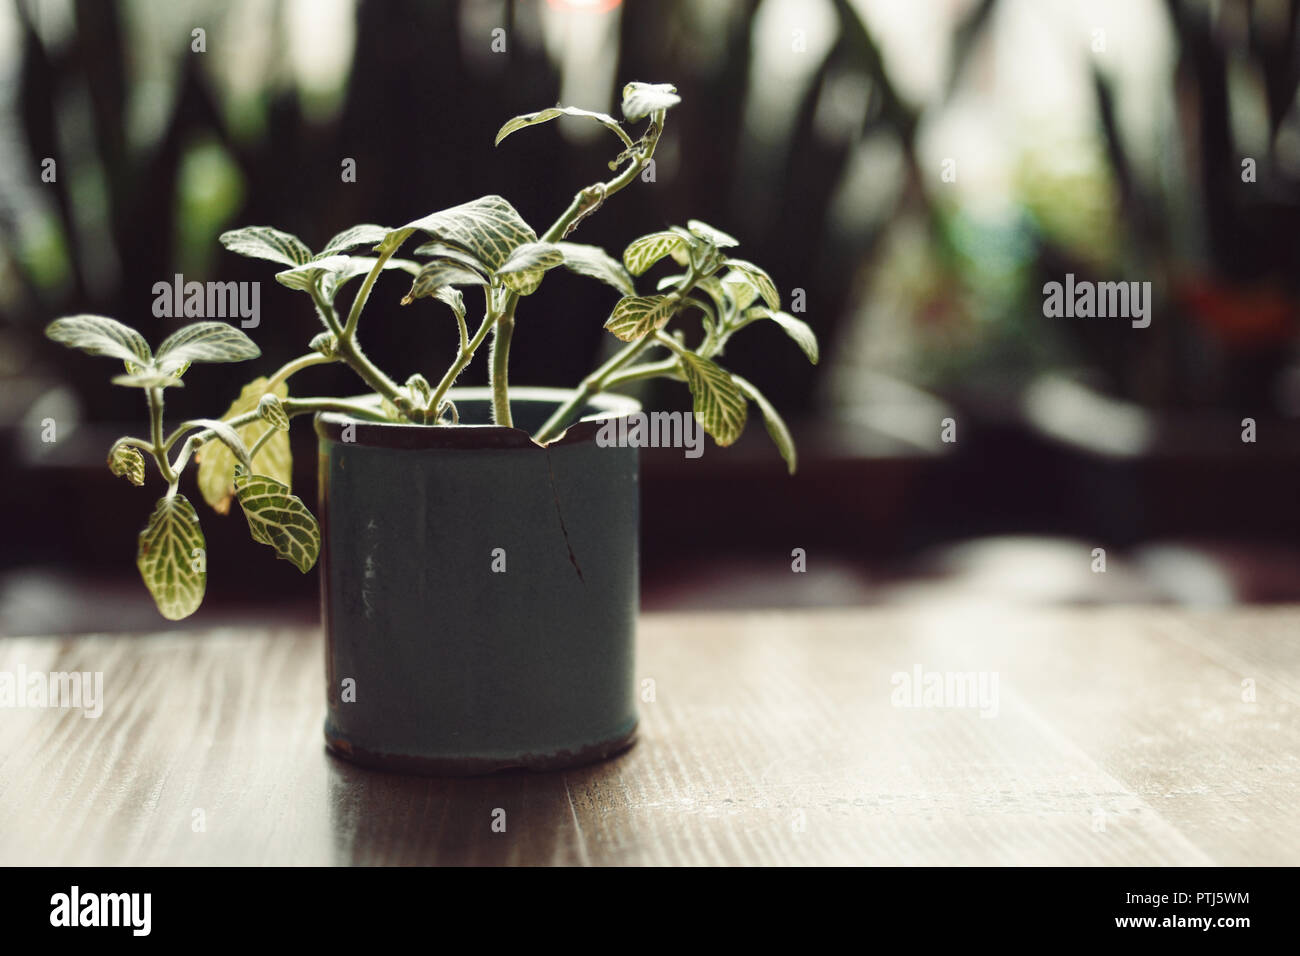 Green Pot with plant on wooden table backlit in dark room Stock Photo